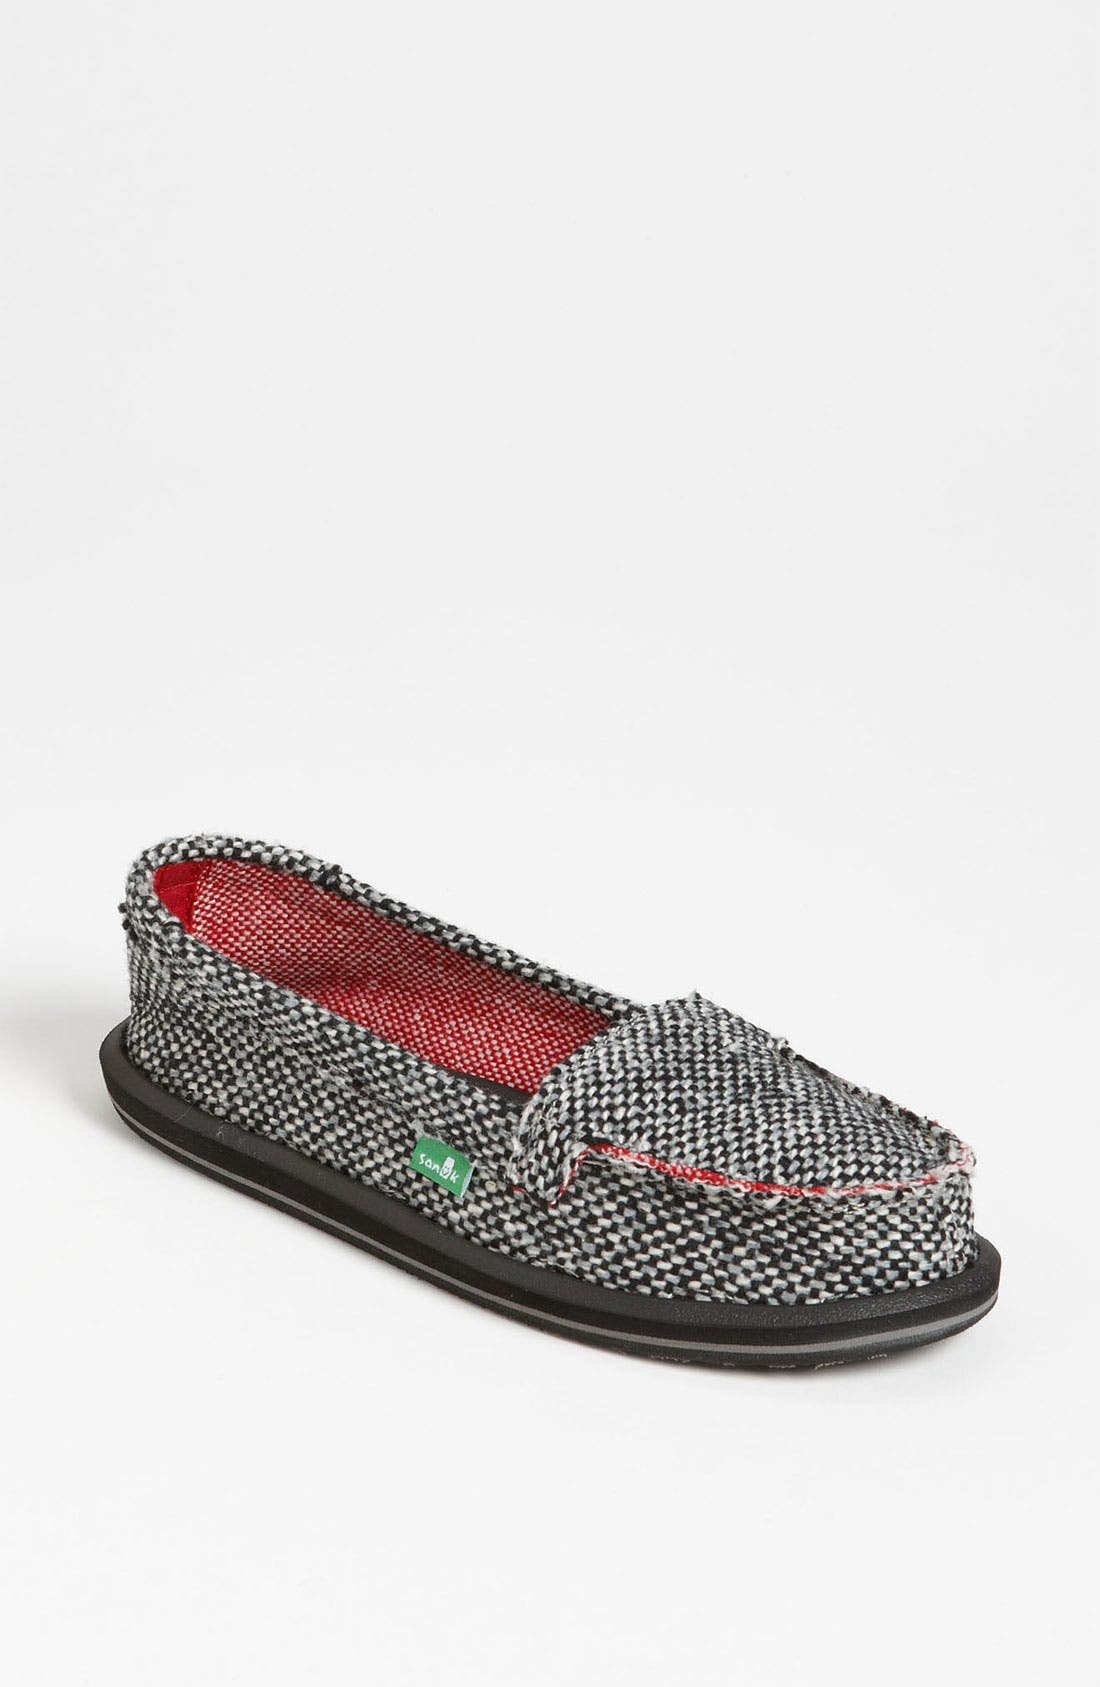 Alternate Image 1 Selected - Sanuk 'Tweedy II' Slip-On